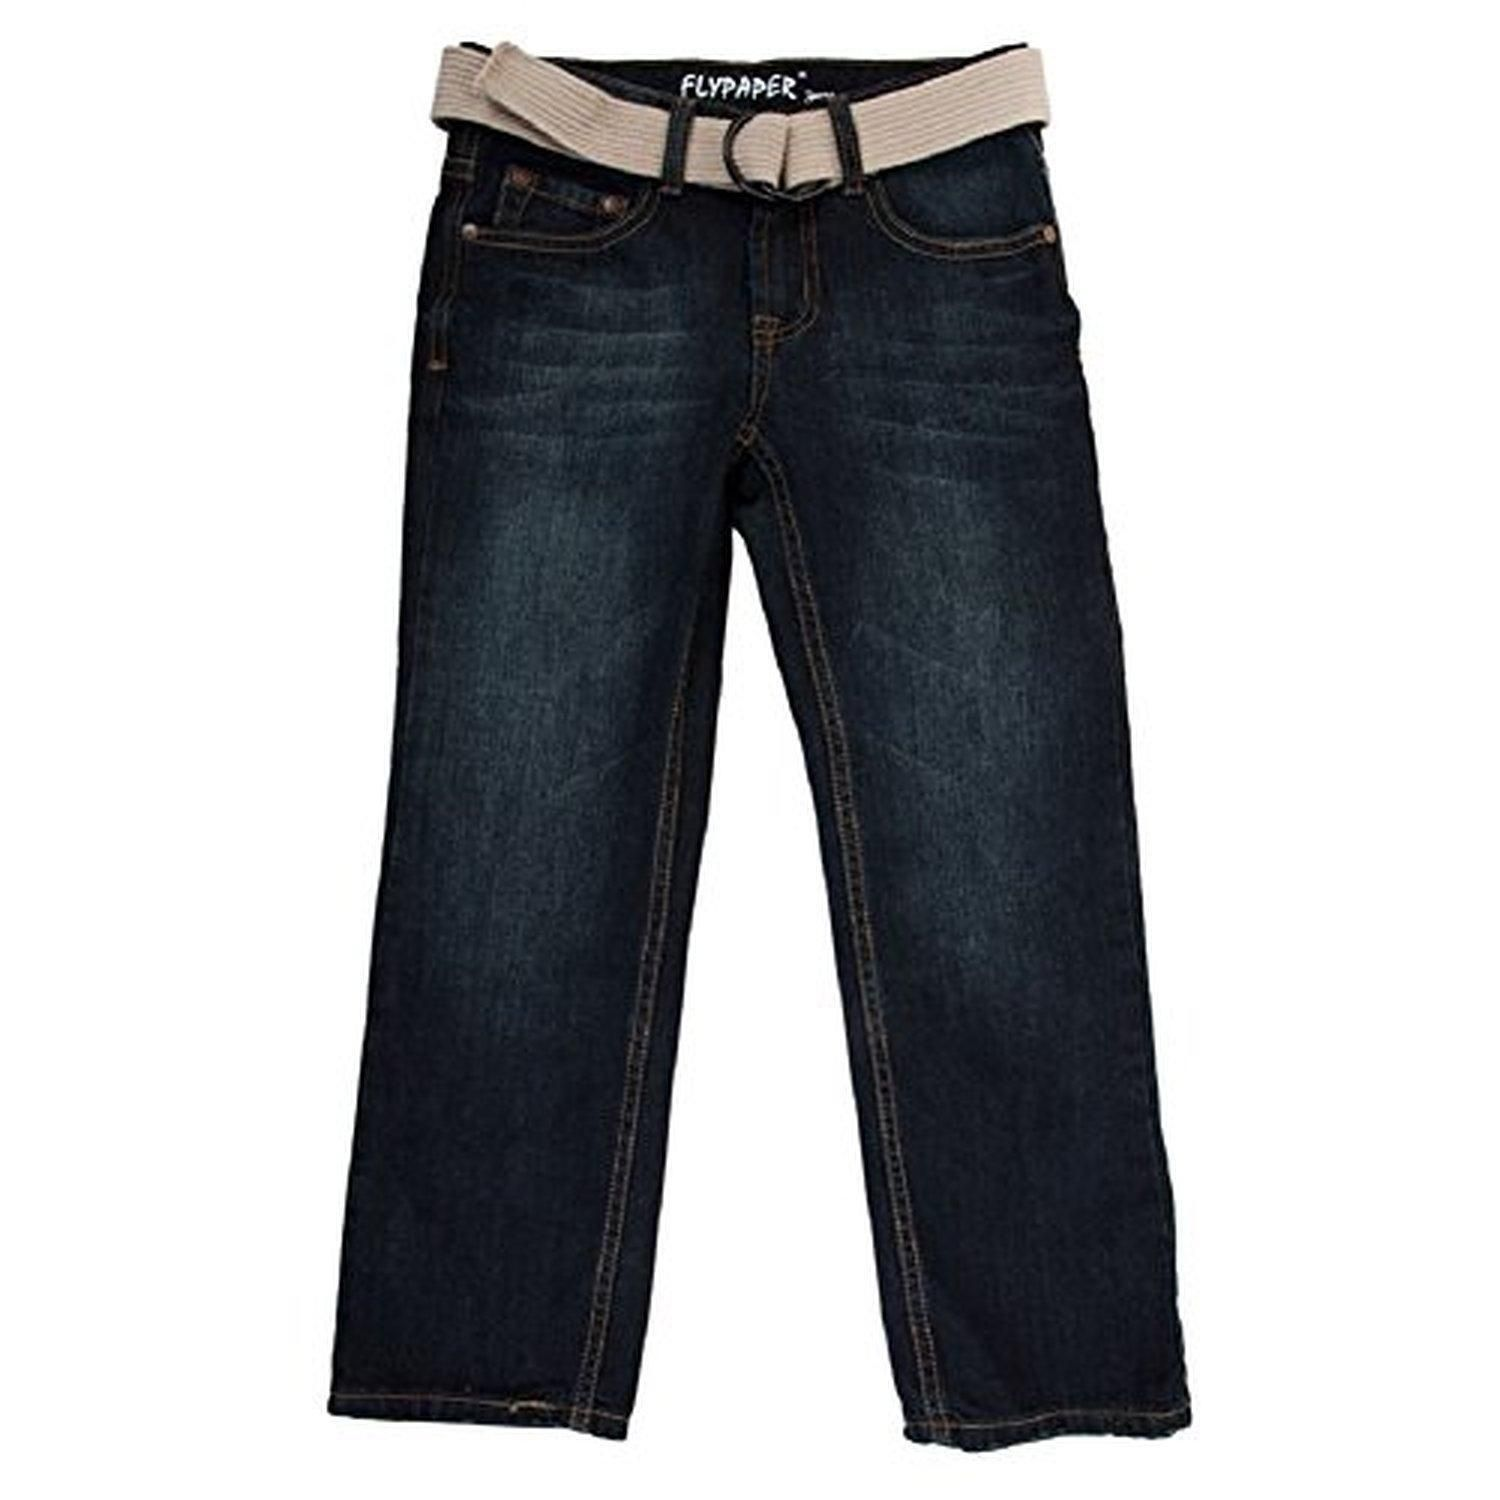 Flypaper Jeans Boys 8-20 Regular Straight Leg Jean (20R, Dark Wash) - Brought to you by Avarsha.com